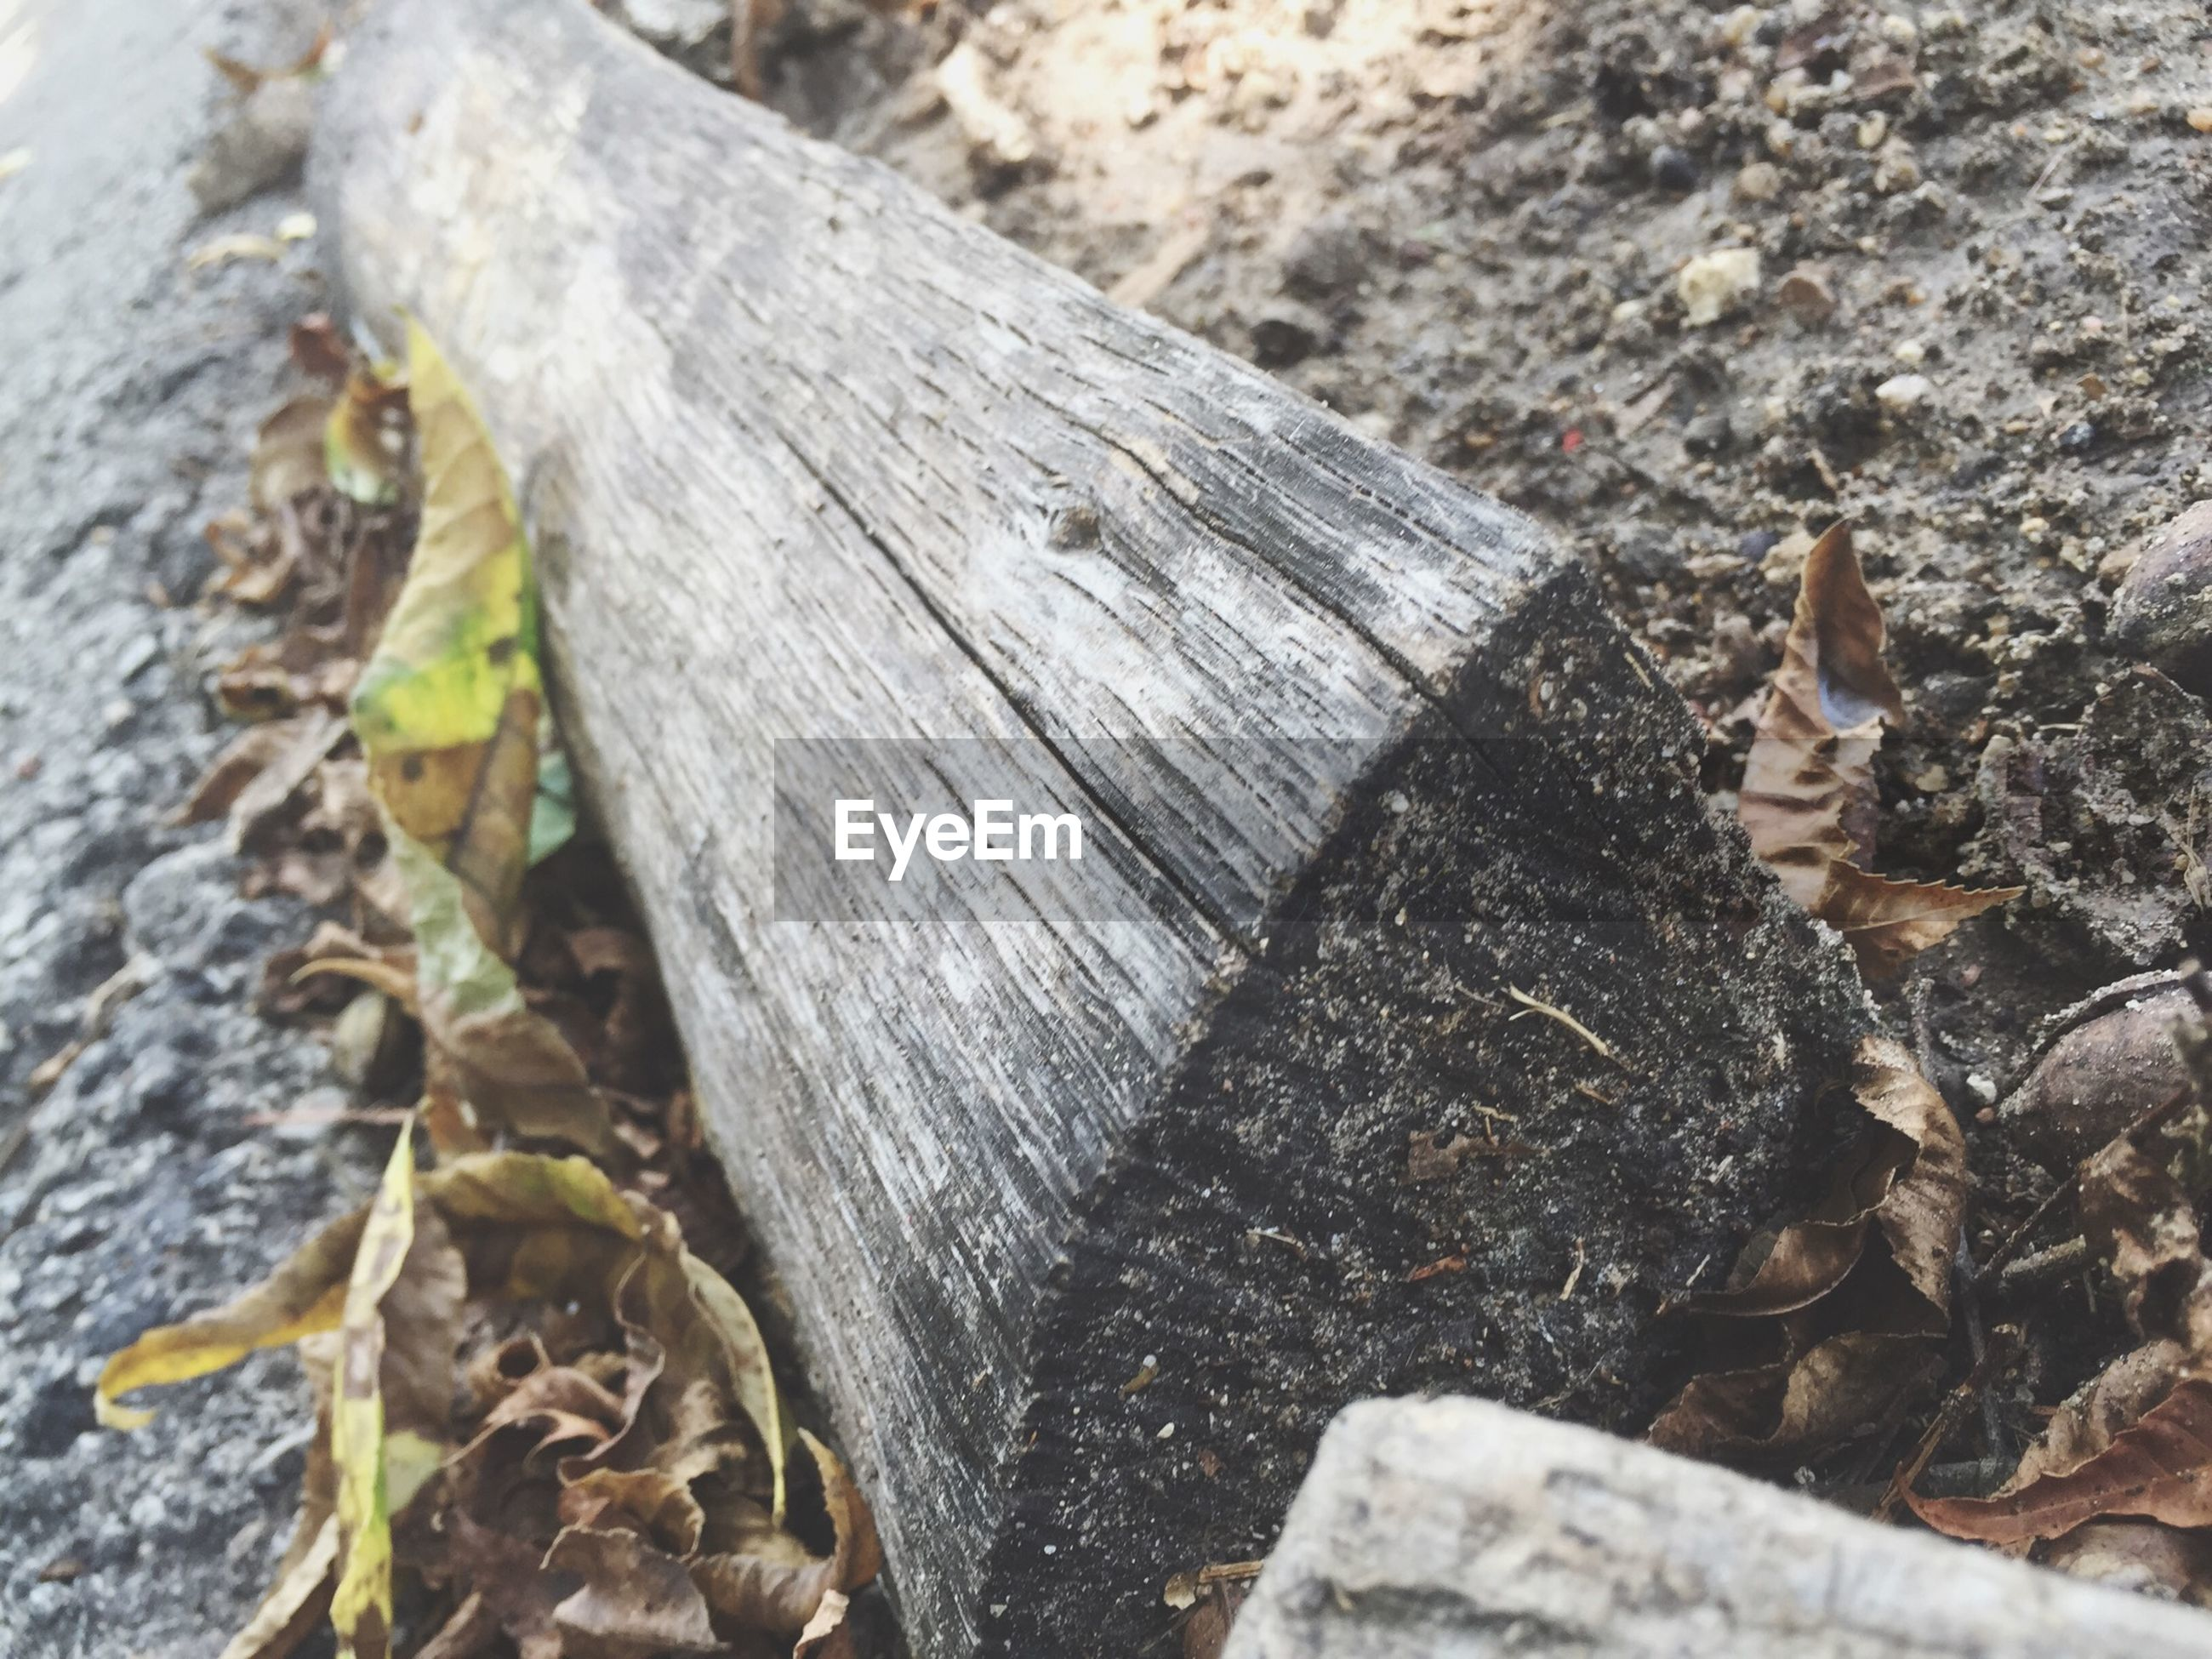 wood - material, leaf, close-up, nature, high angle view, dry, growth, day, plant, outdoors, focus on foreground, textured, no people, tree trunk, selective focus, wood, field, fallen, ground, sunlight